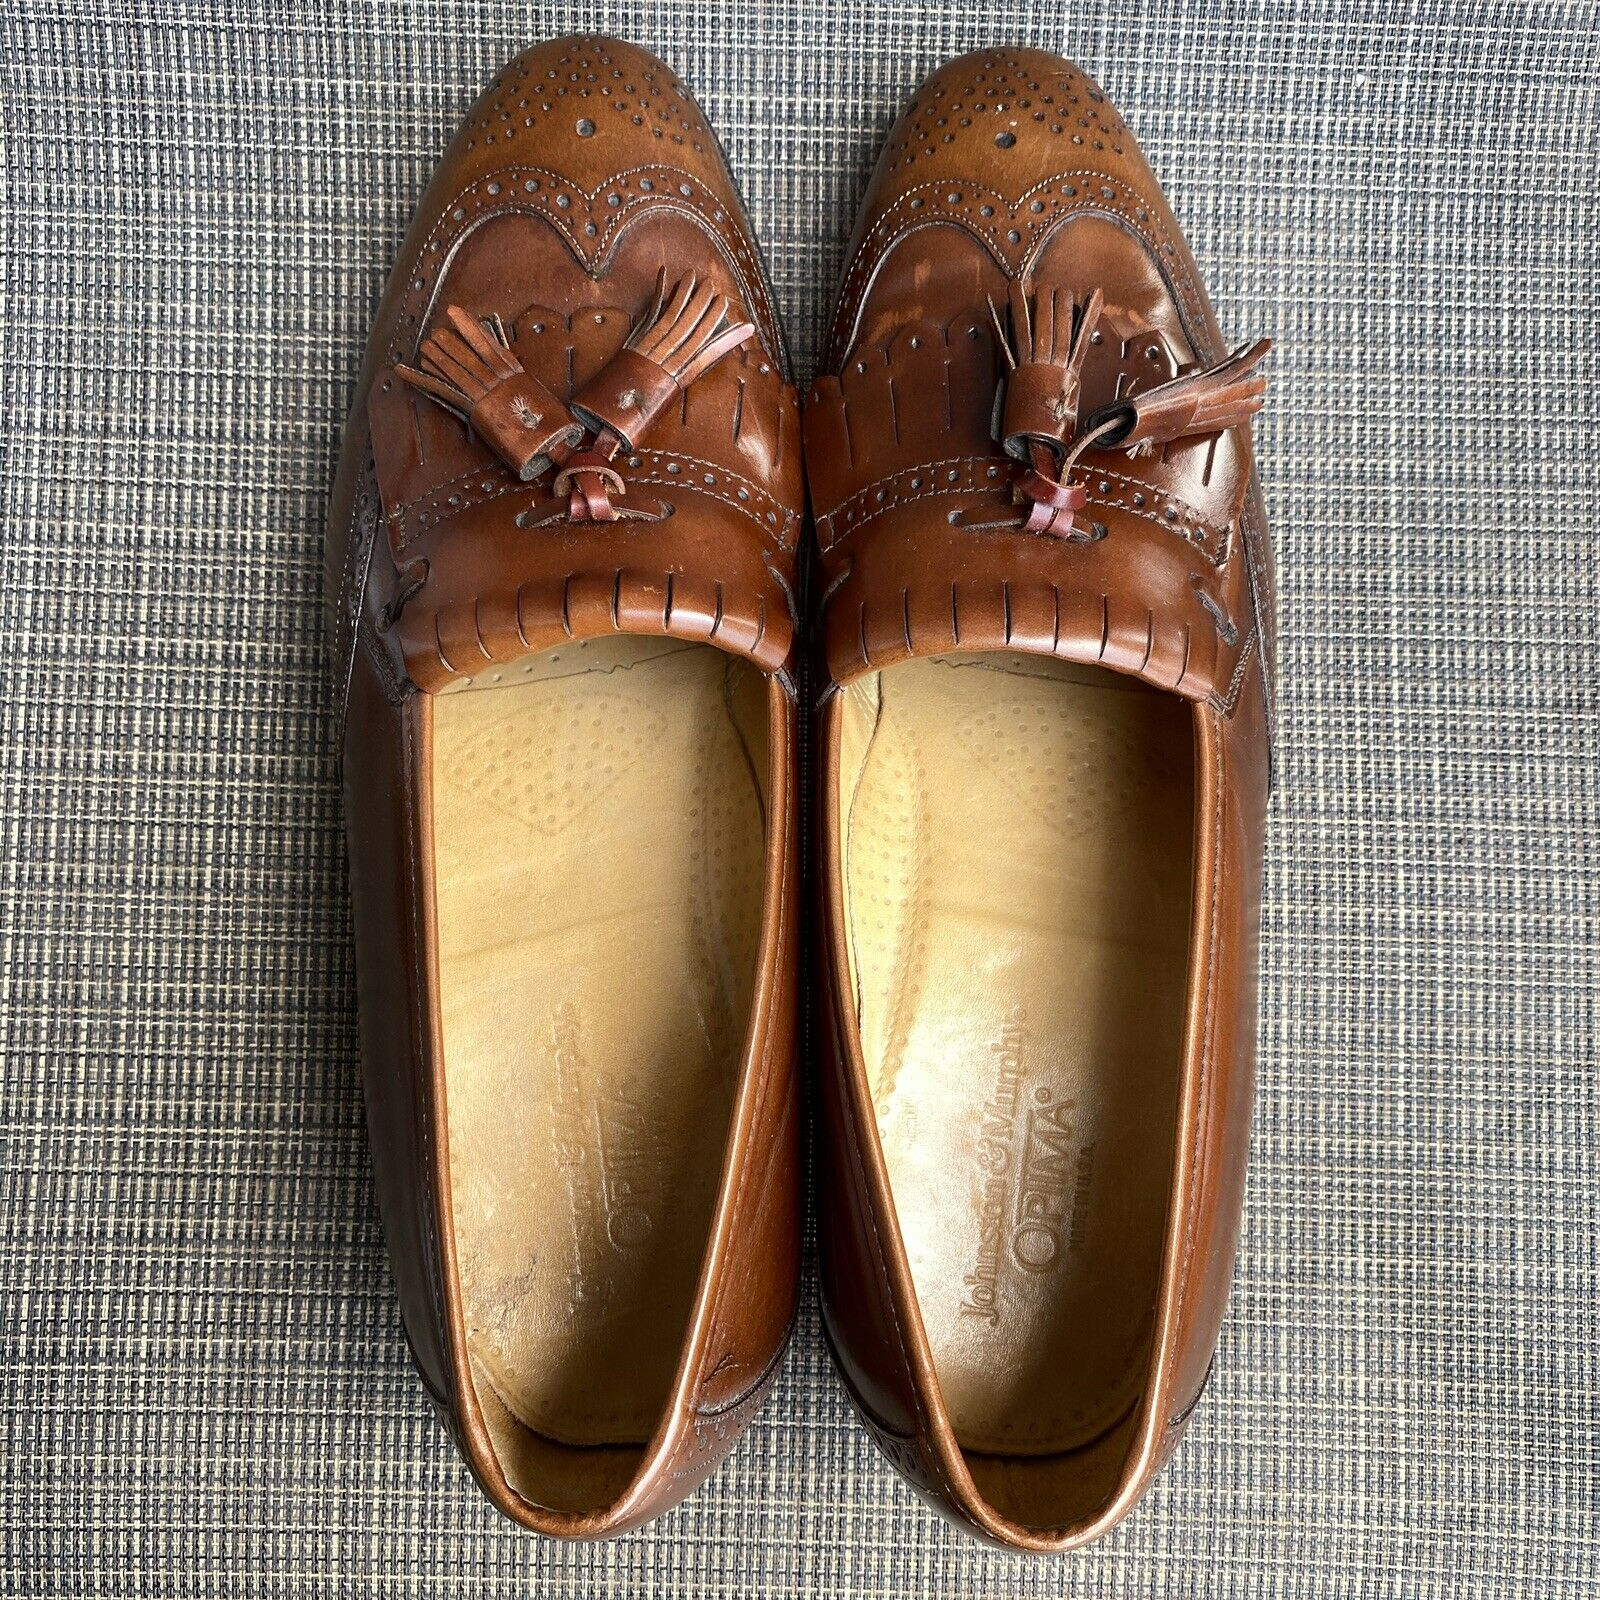 Johnston and Murphy 10 D Optima Loafer Tassel Brown Leather shoes